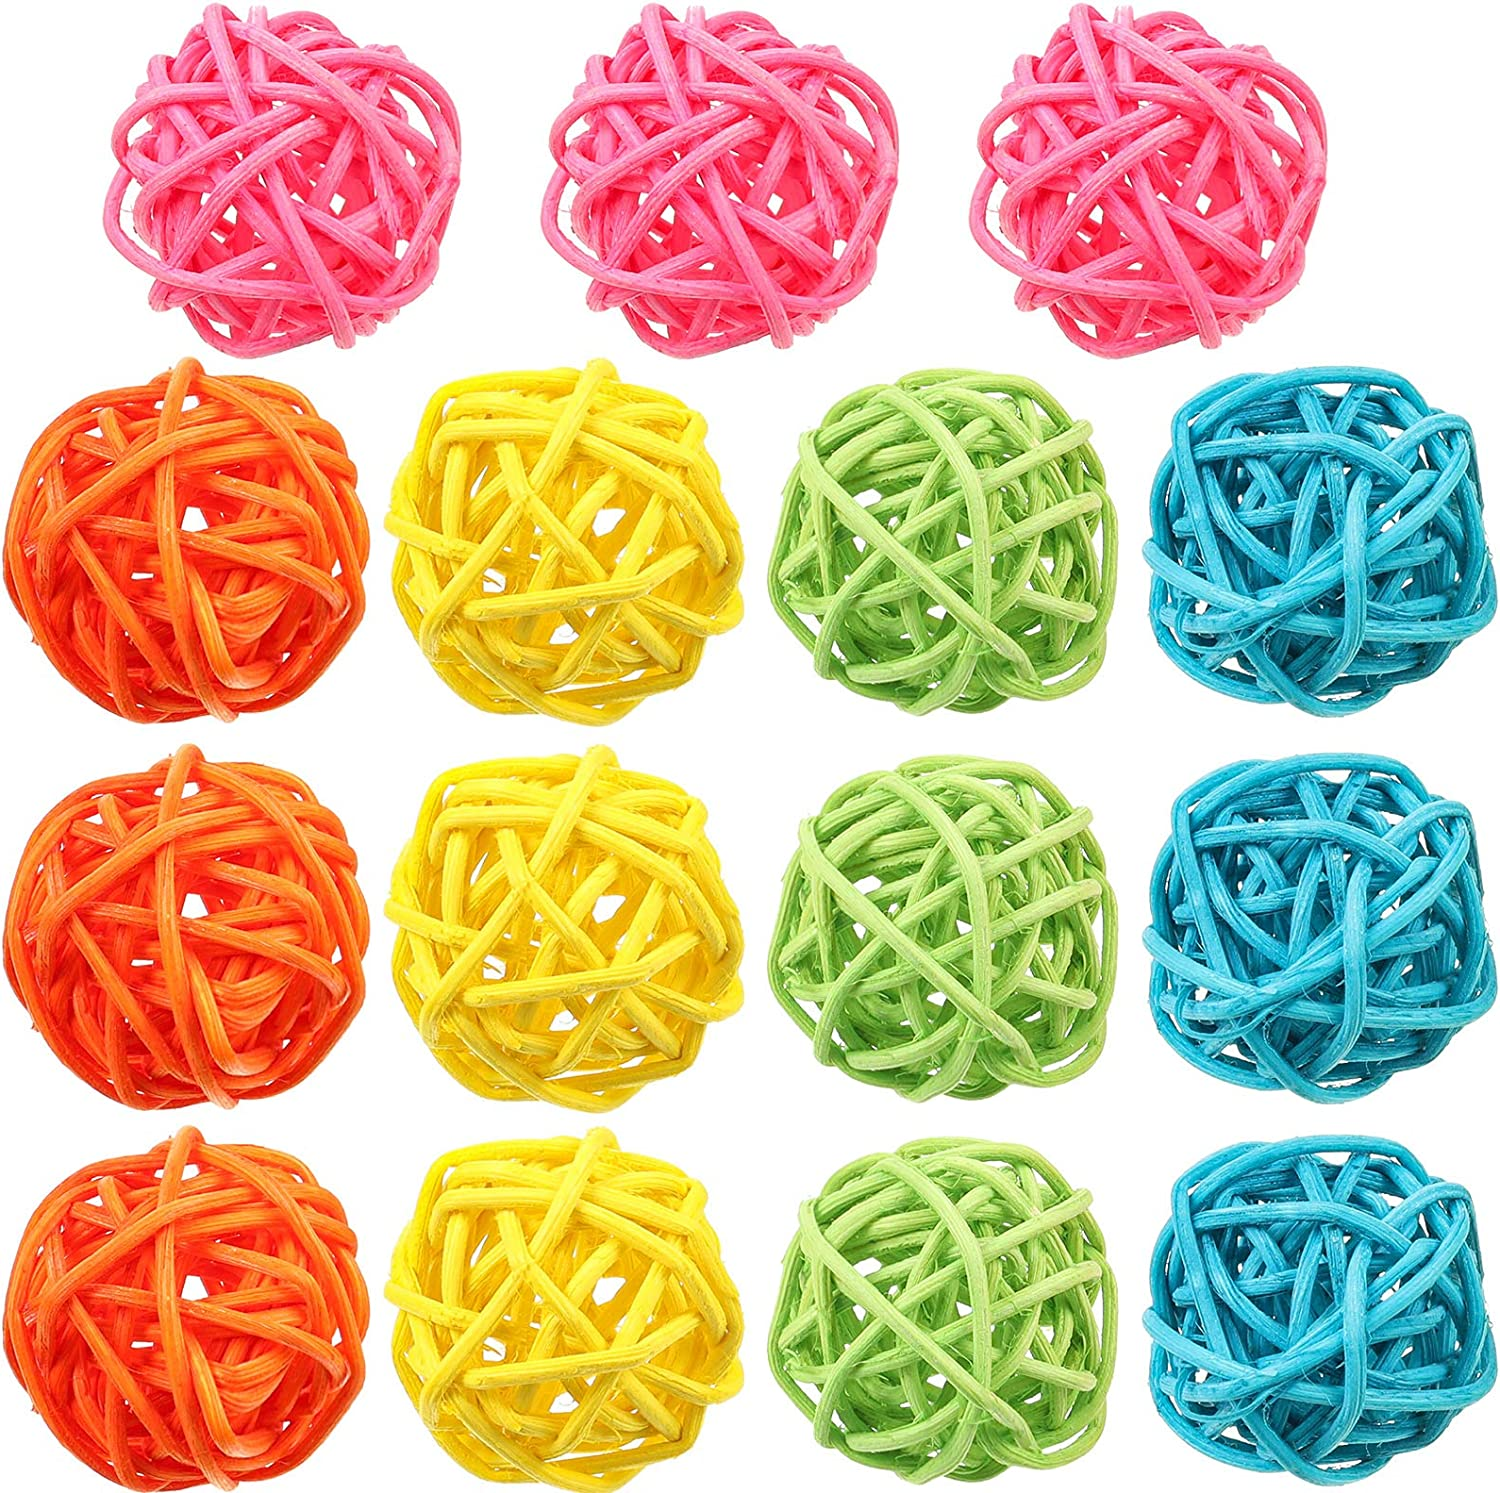 Patelai 15 Pieces Wicker Rattan Balls 1.6 Inch Decorative Orbs Vase Fillers Wicker Ball Vase Filler for Holiday Aromatherapy Accessory Table Banquet Decoration (Pink, Orange, Green, Blue, Yellow)